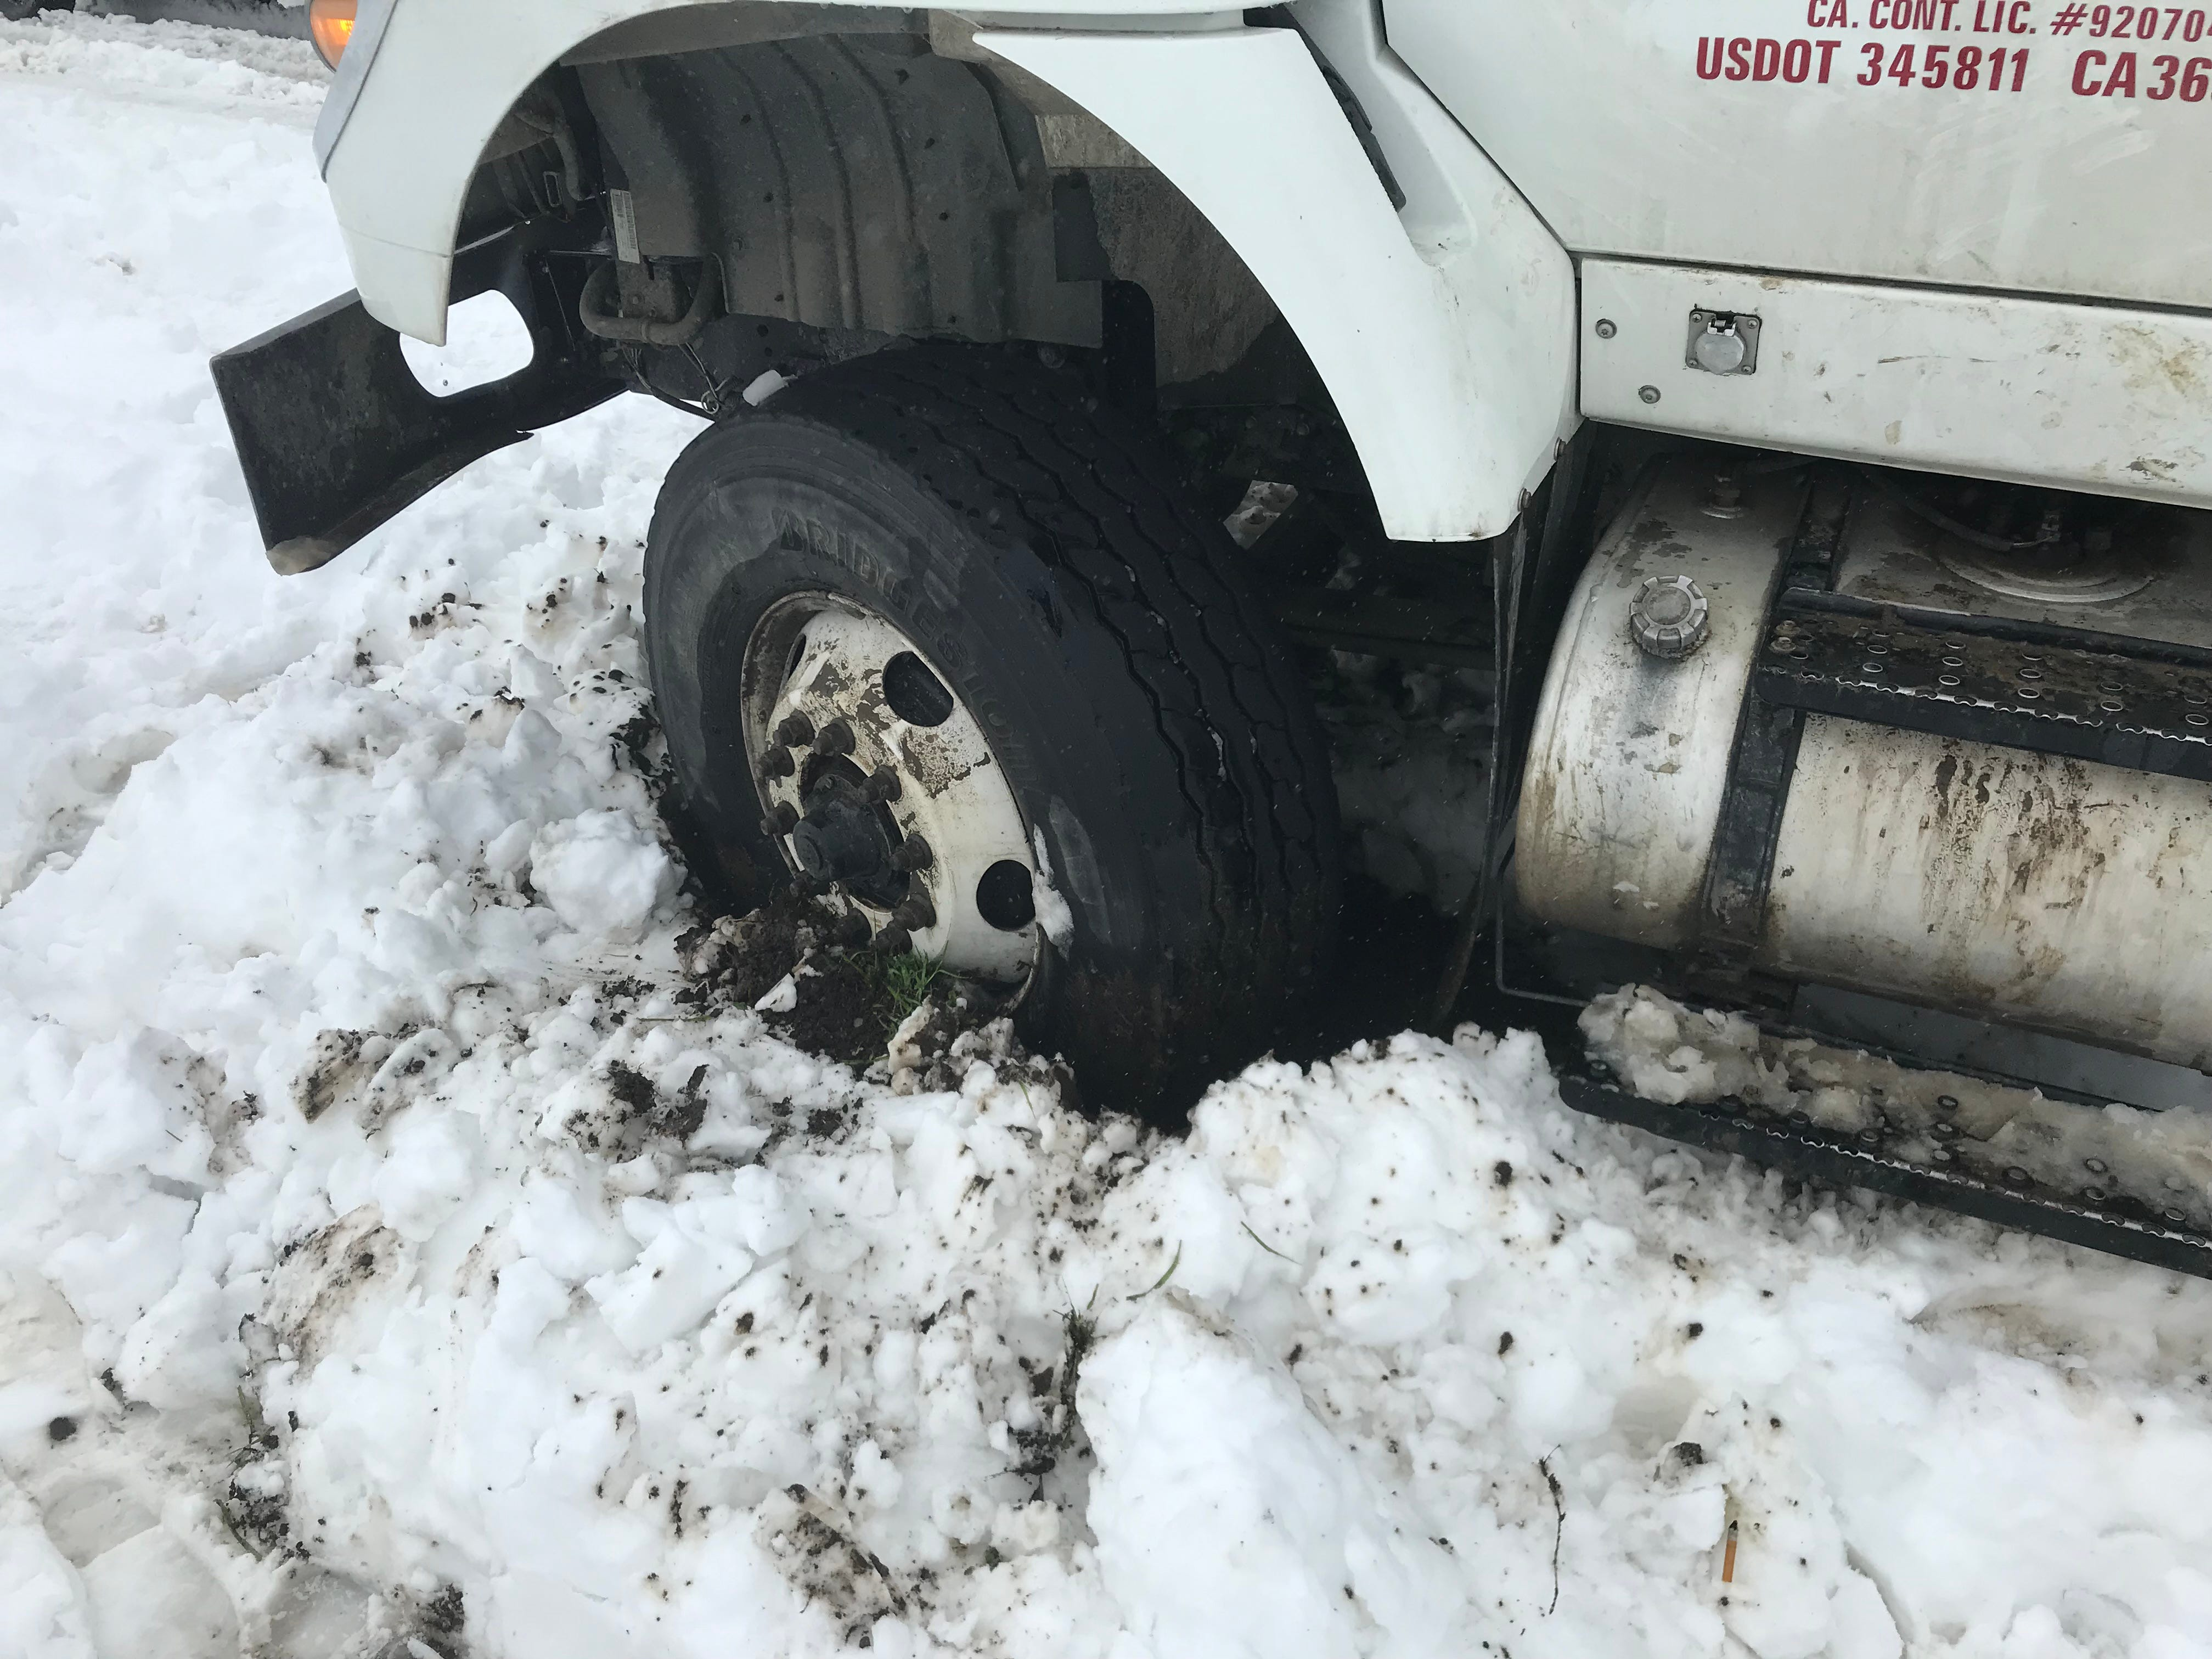 A truck got stuck in the snow along Interstate 5 in Anderson on Wednesday.